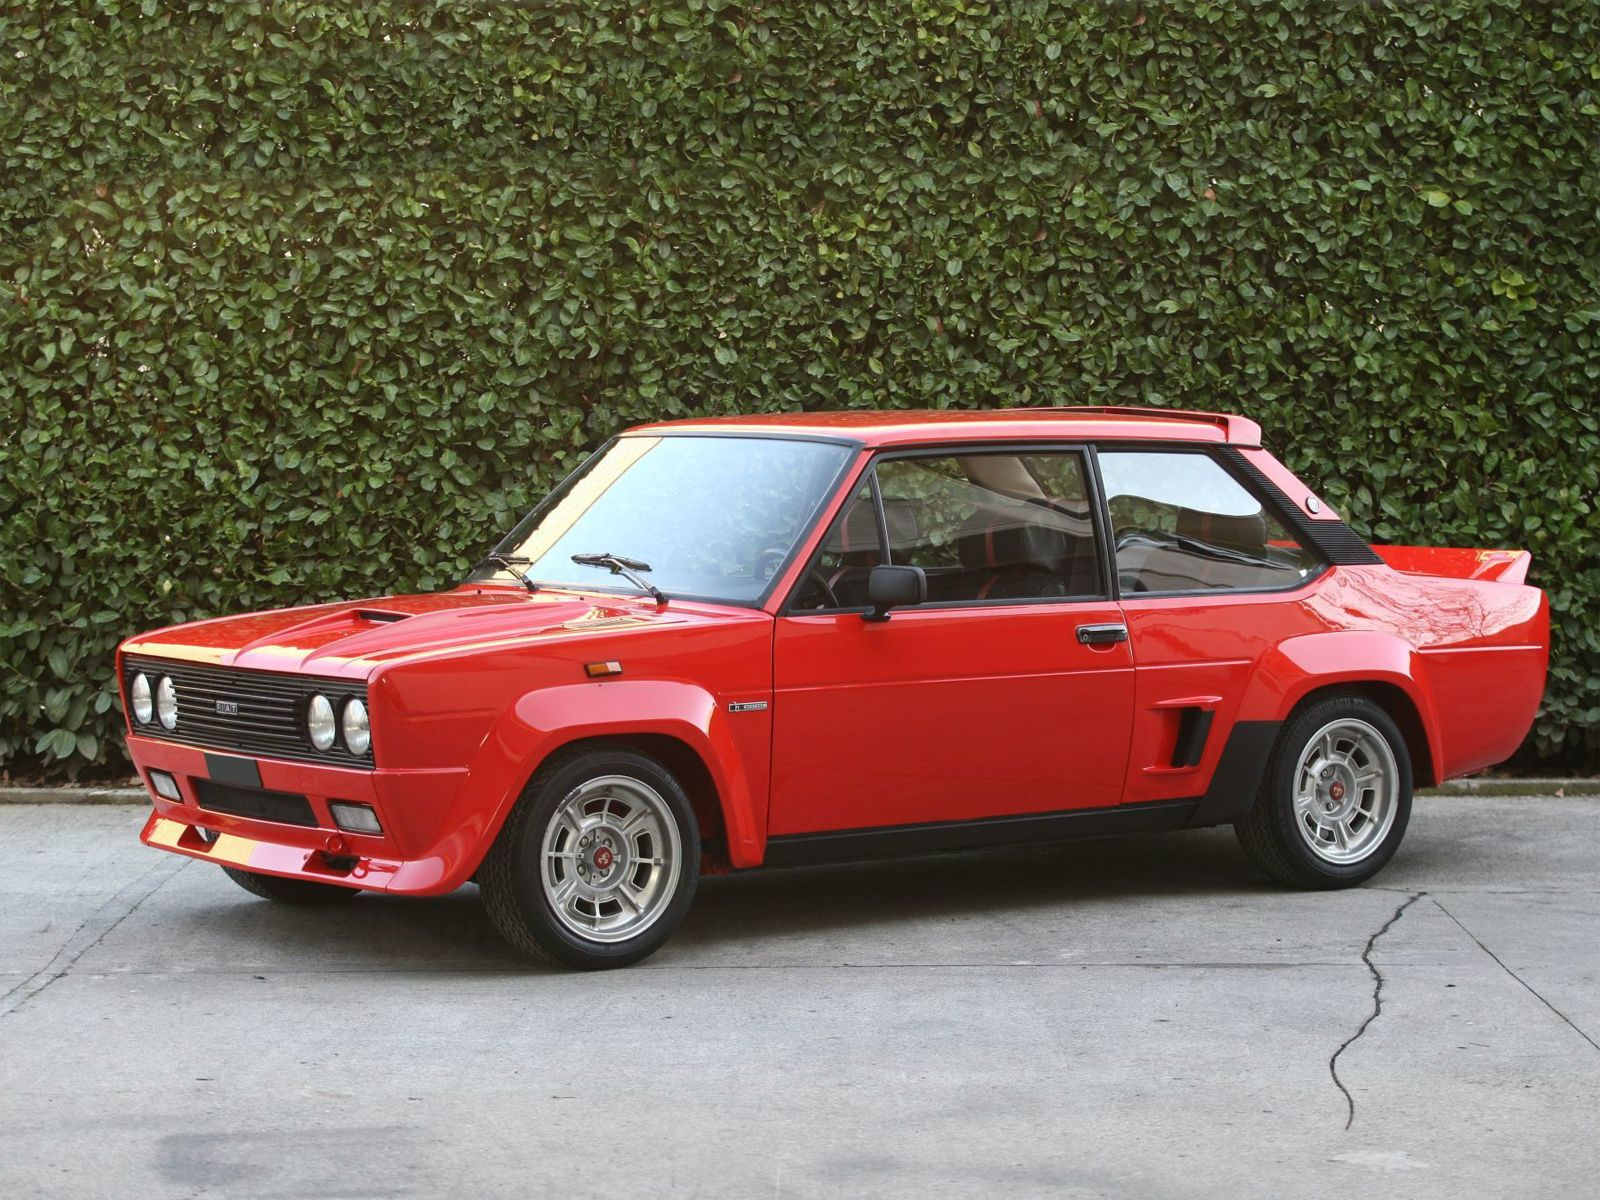 Fiat Abarth 131 Rally With Images Fiat Abarth Fiat Fiat Cars